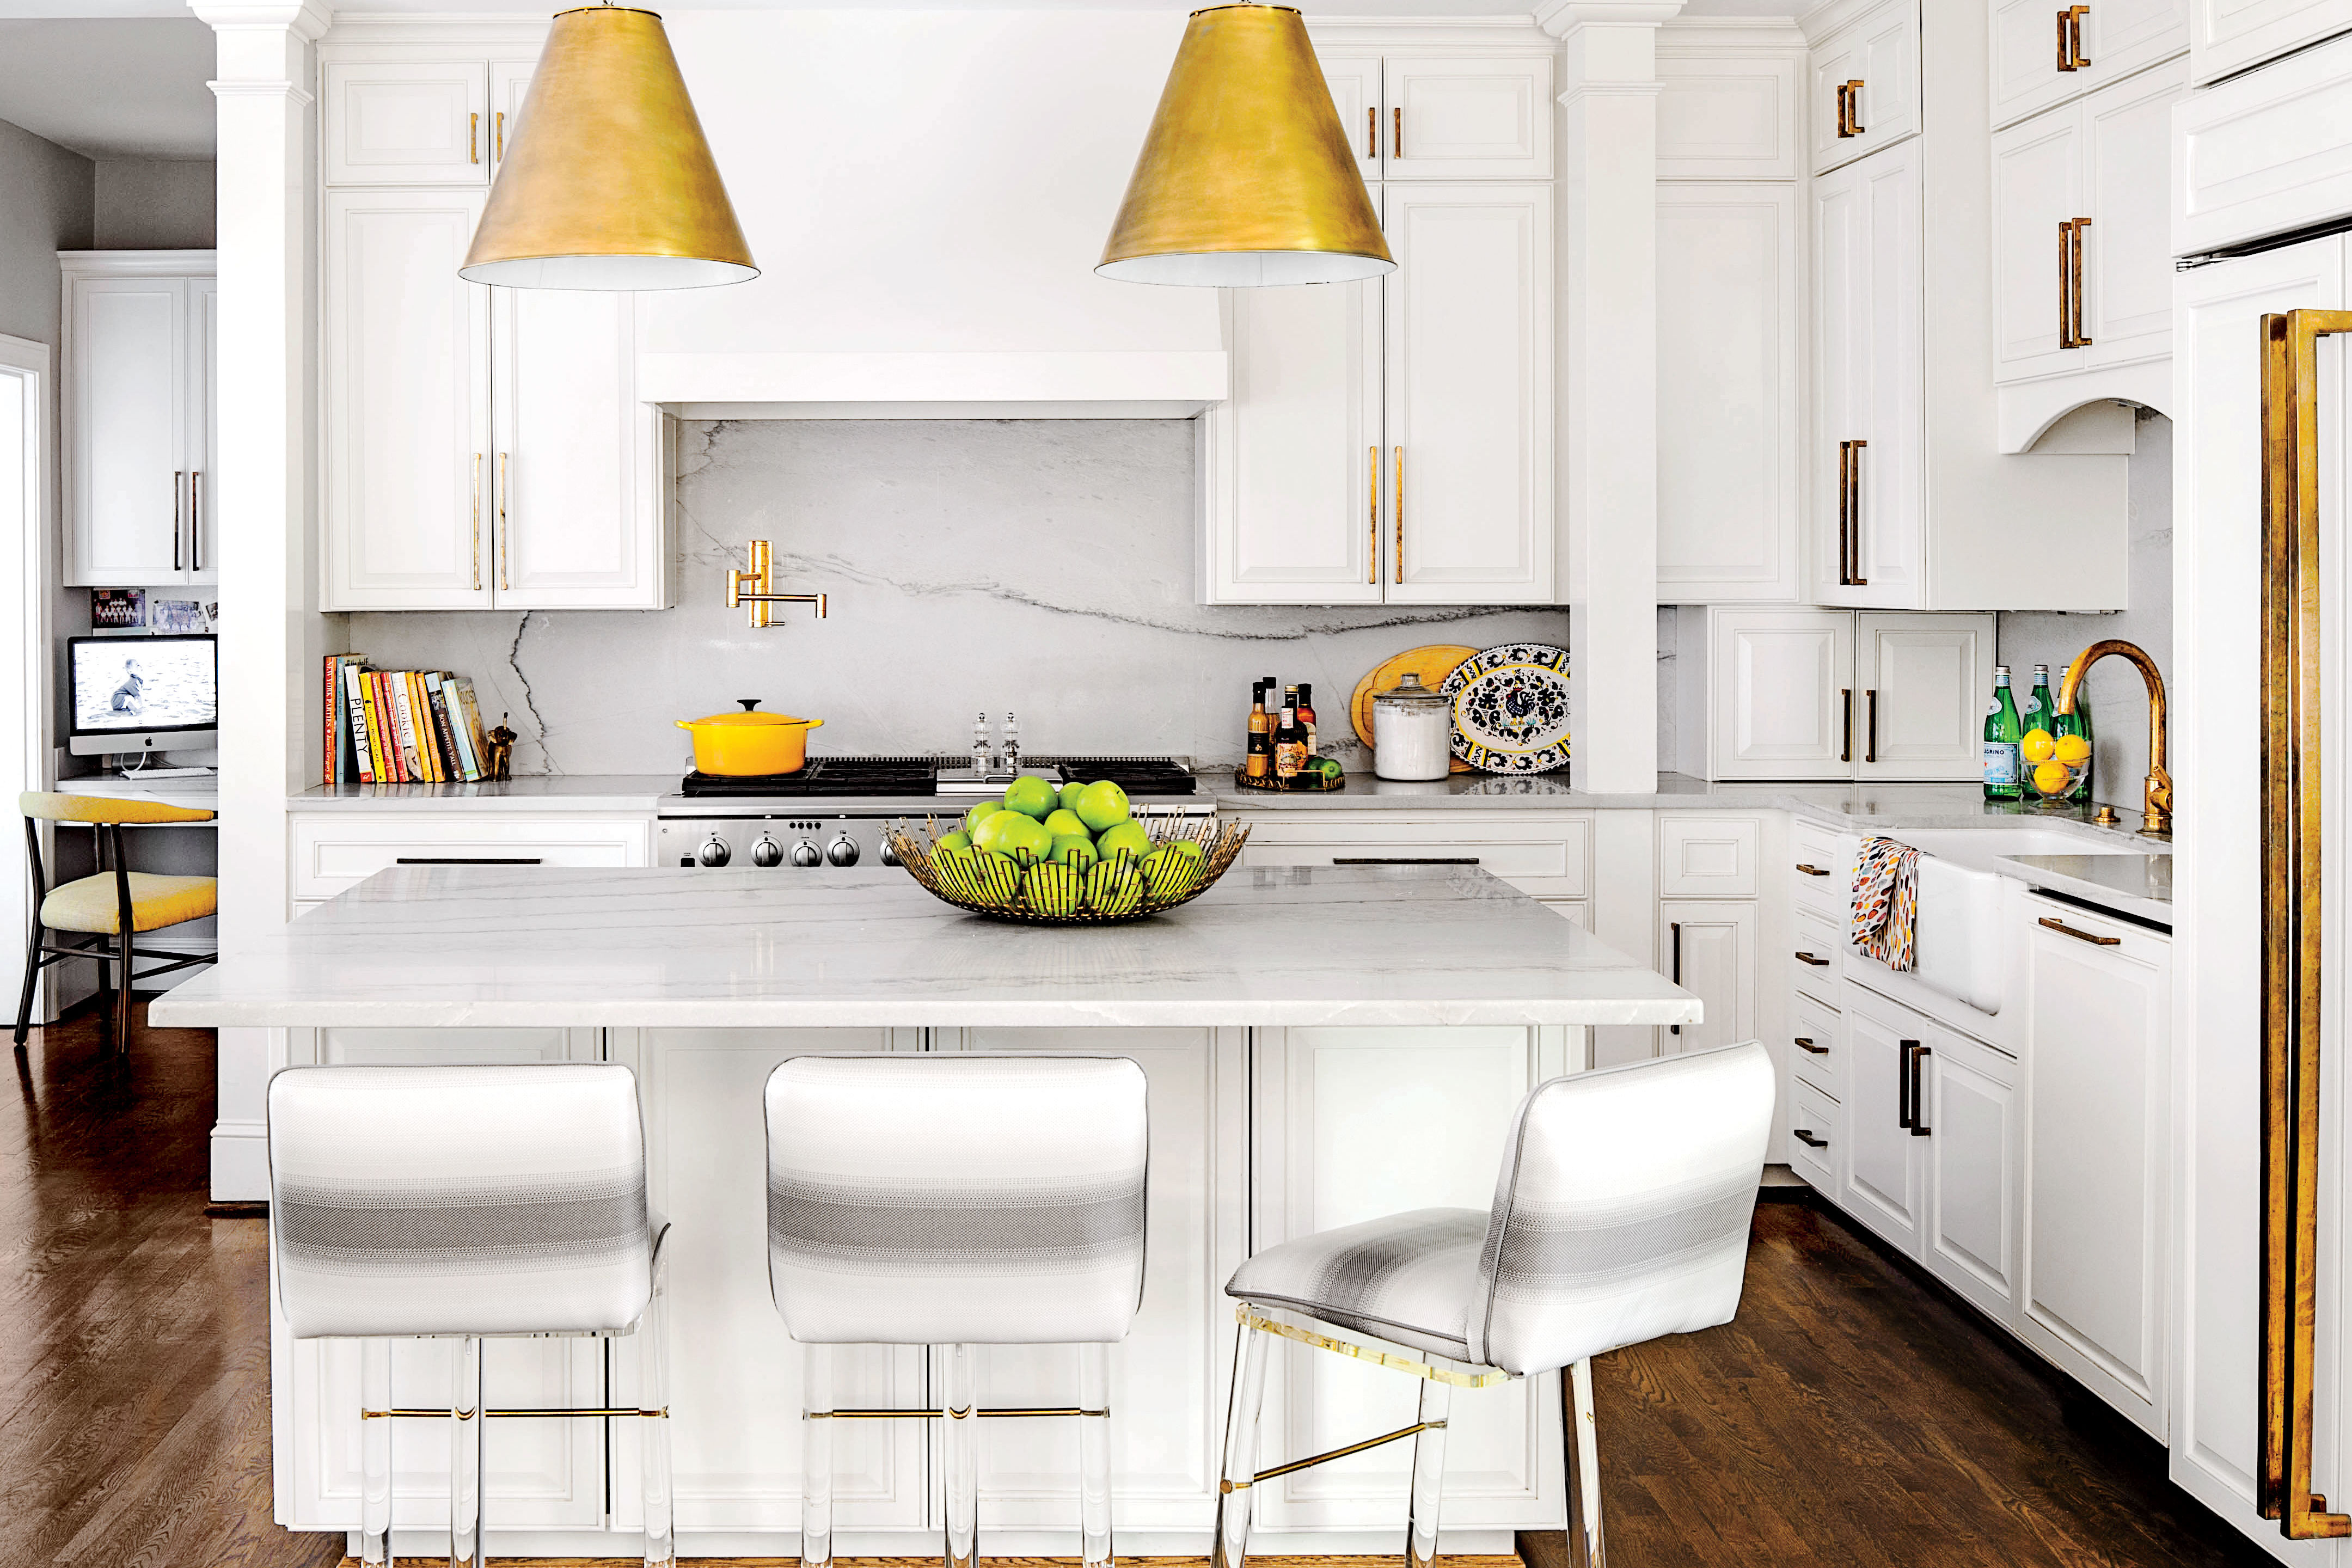 All-Time Favorite White Kitchens - Southern Living on country kitchens with white cabinets, best flooring for white cabinets, kitchen wall color ideas with white cabinets, best kitchen countertop material,